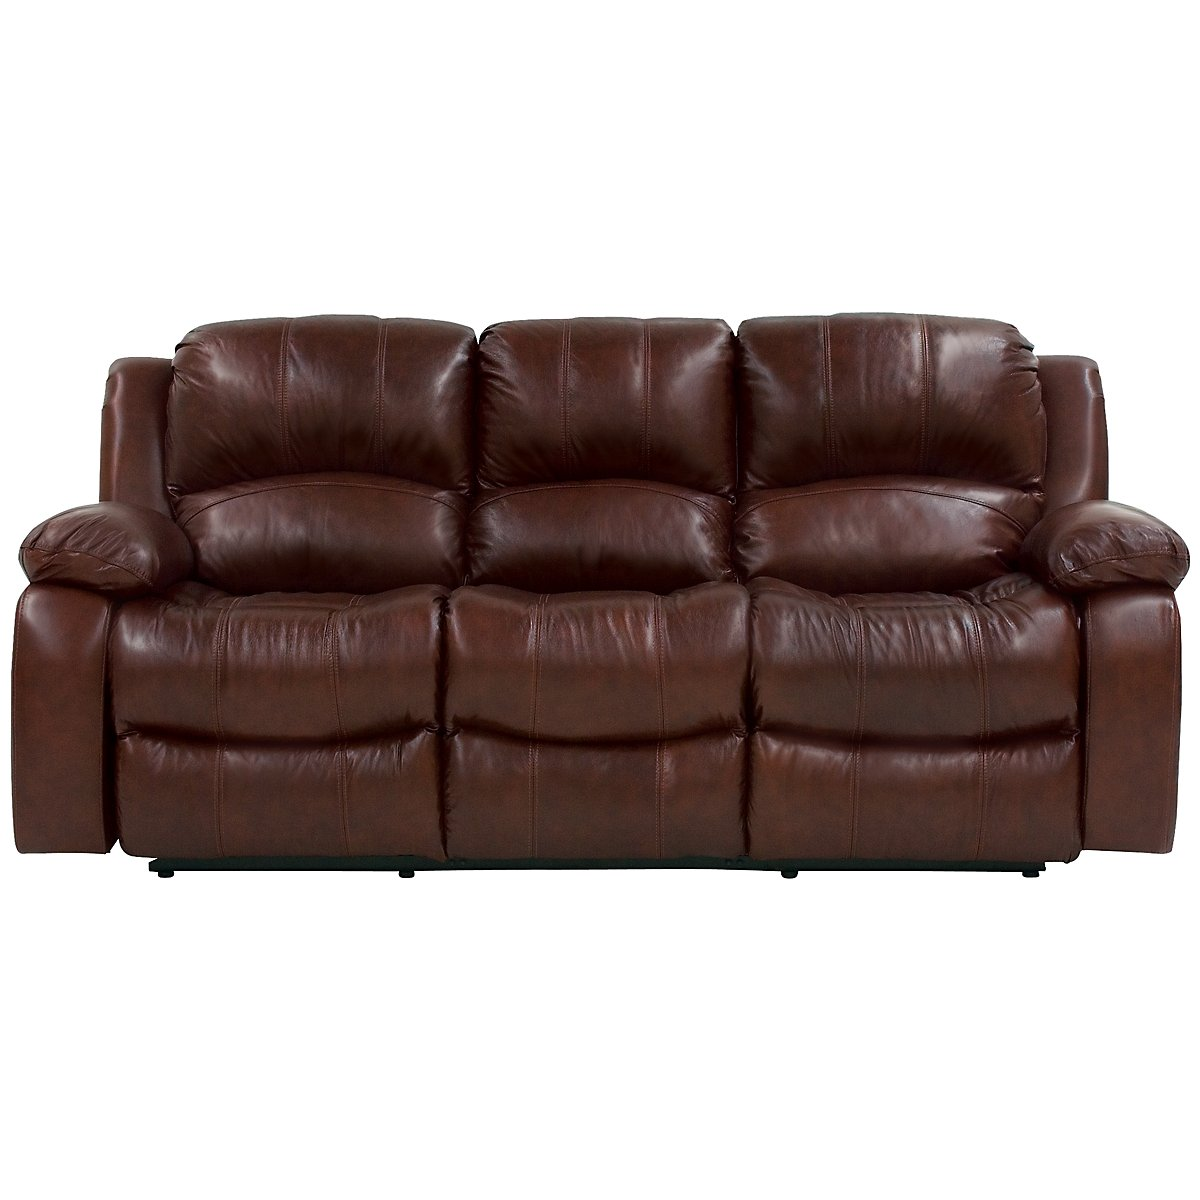 Tyler3 Md Brown Leather & Vinyl Reclining Sofa